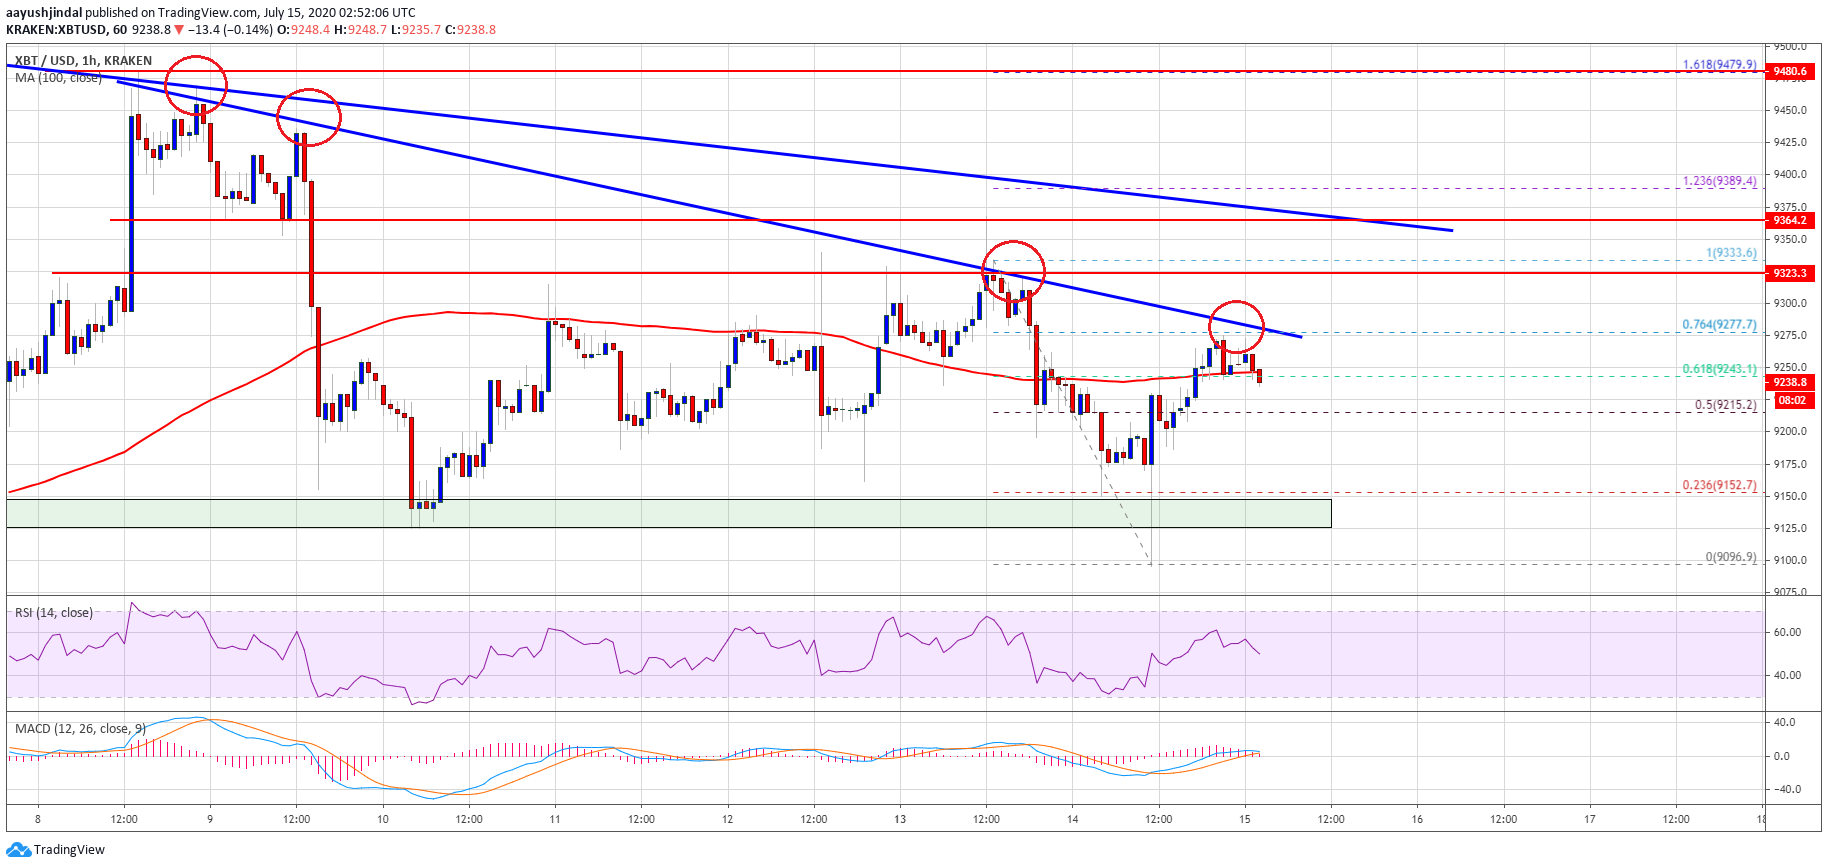 Bitcoin Topside Bias Vulnerable Unless It Surges Past $9,300